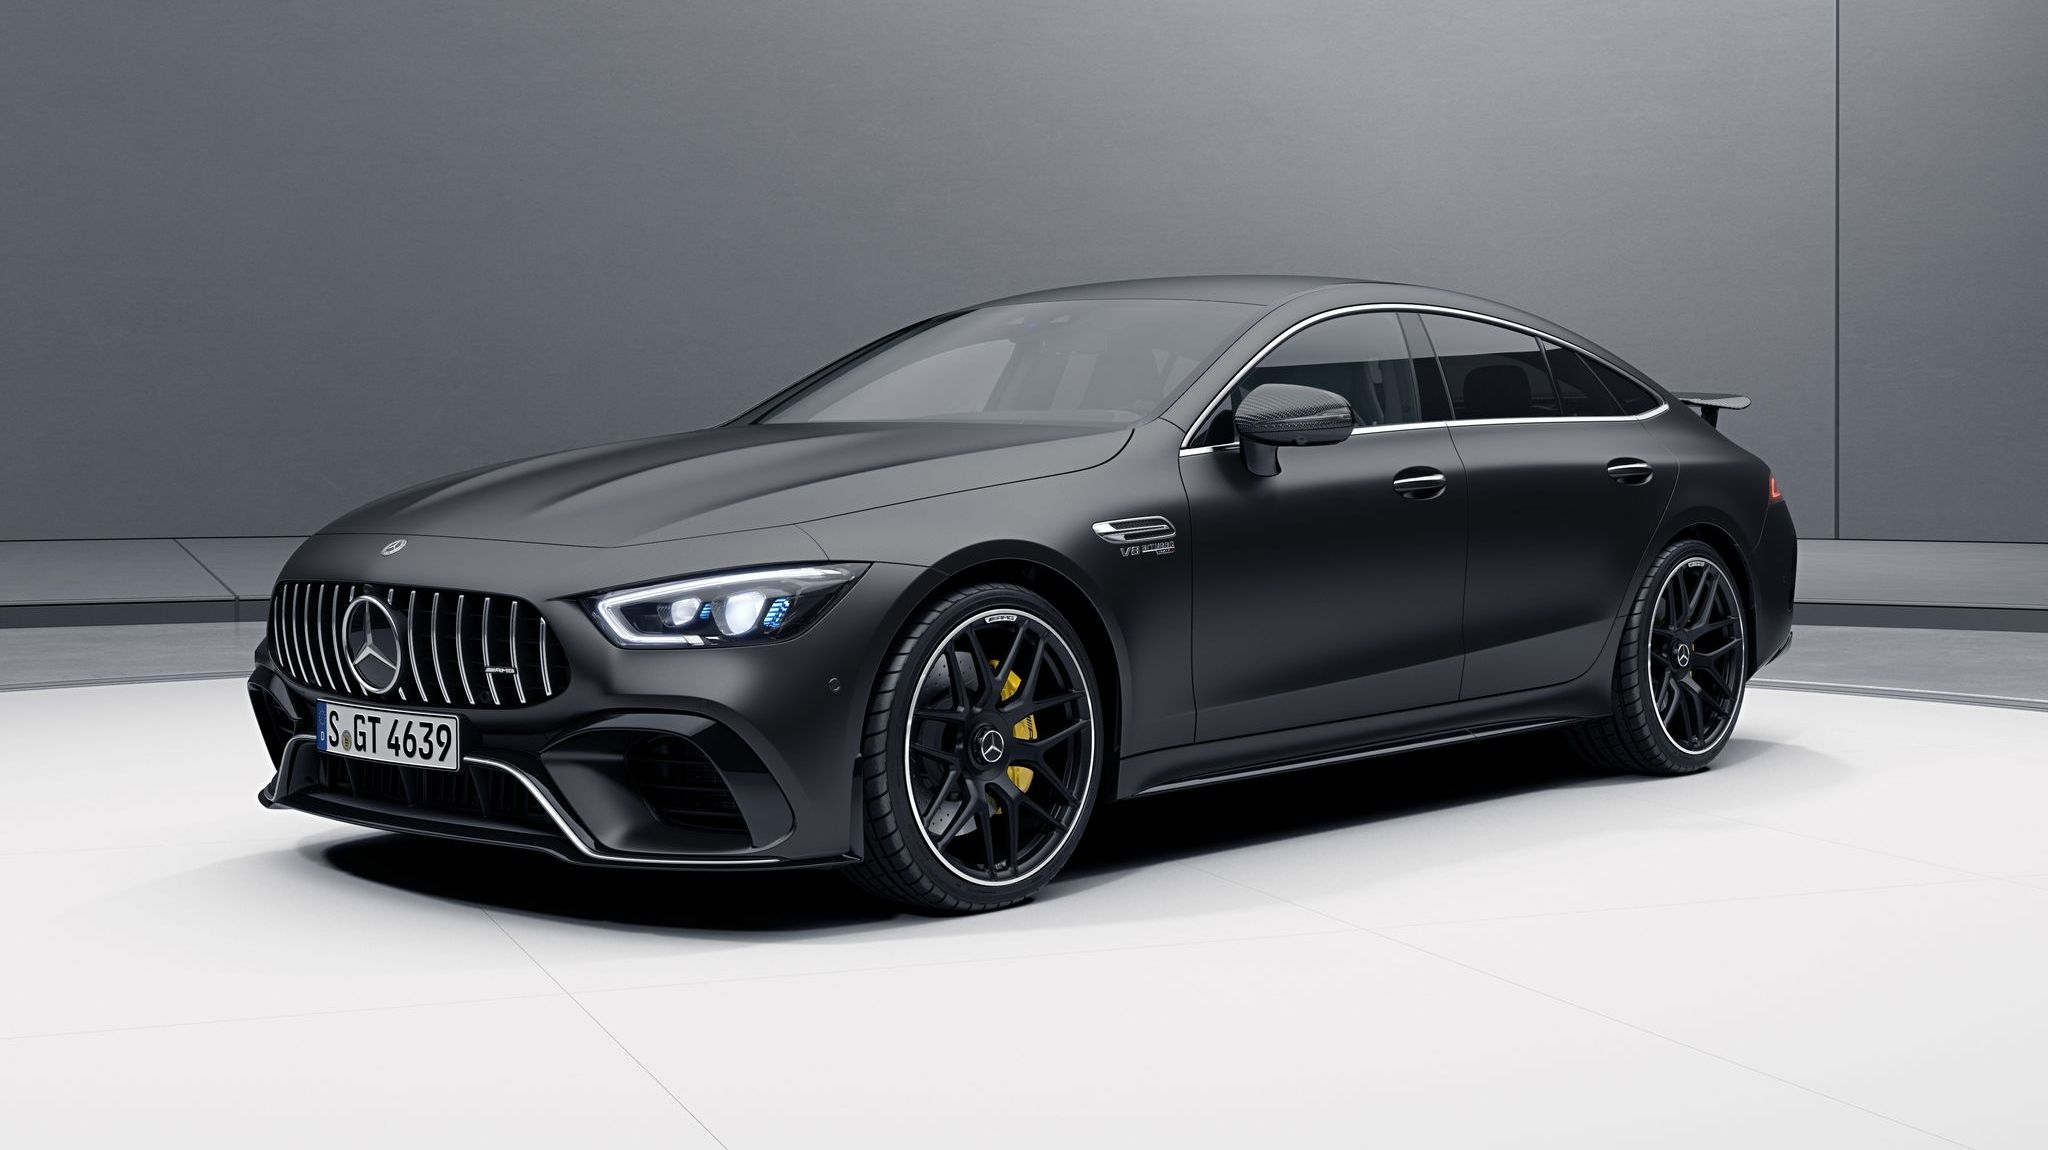 The Mercedes Amg Gt 4 Door Coupe Now Offered With Aero Kit Top Speed Mercedes Amg Black Mercedes Benz Mercedes Benz Amg